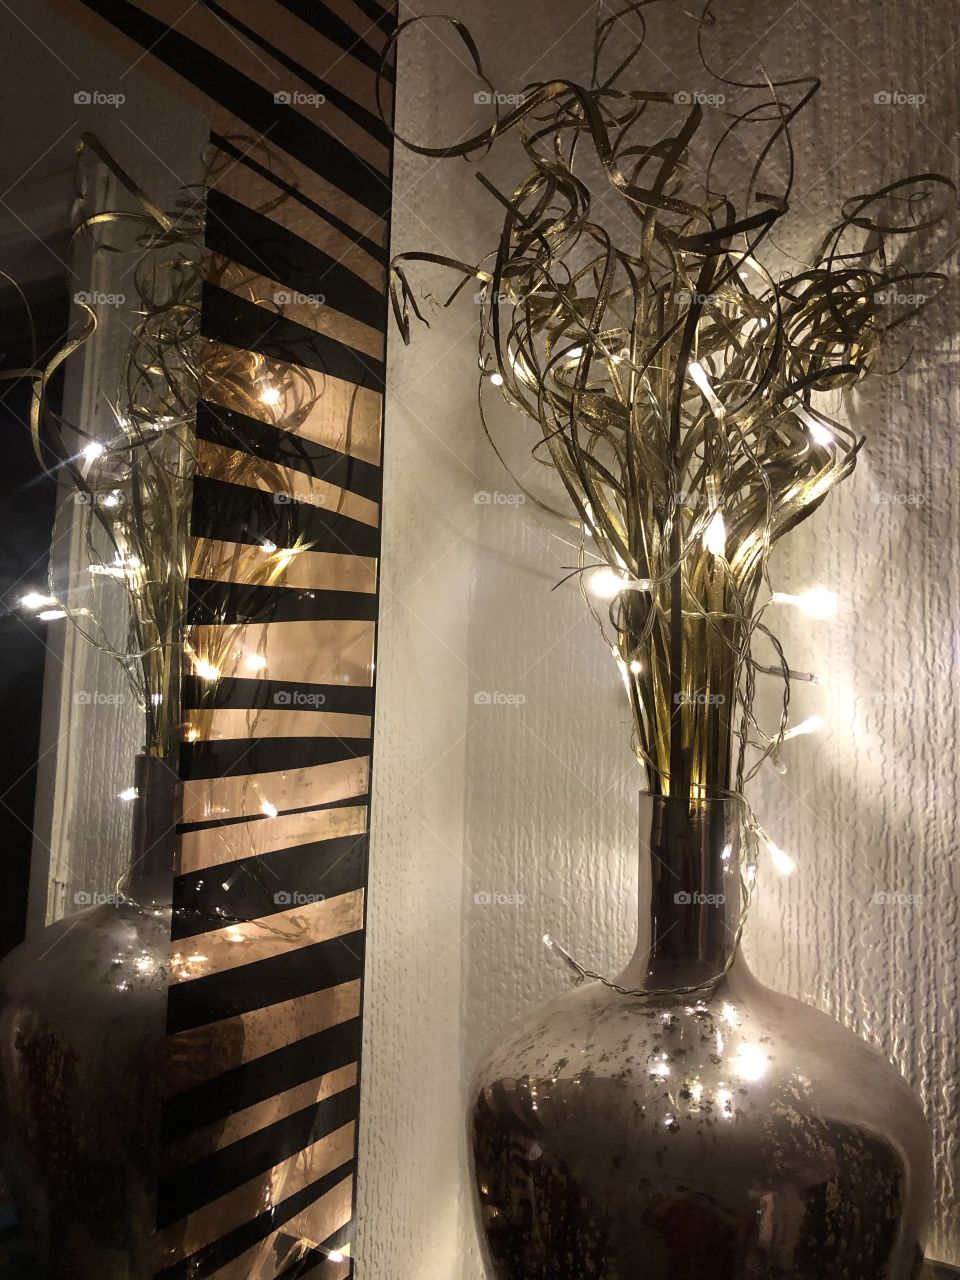 Fairy lights and vase reflecting in the mirror